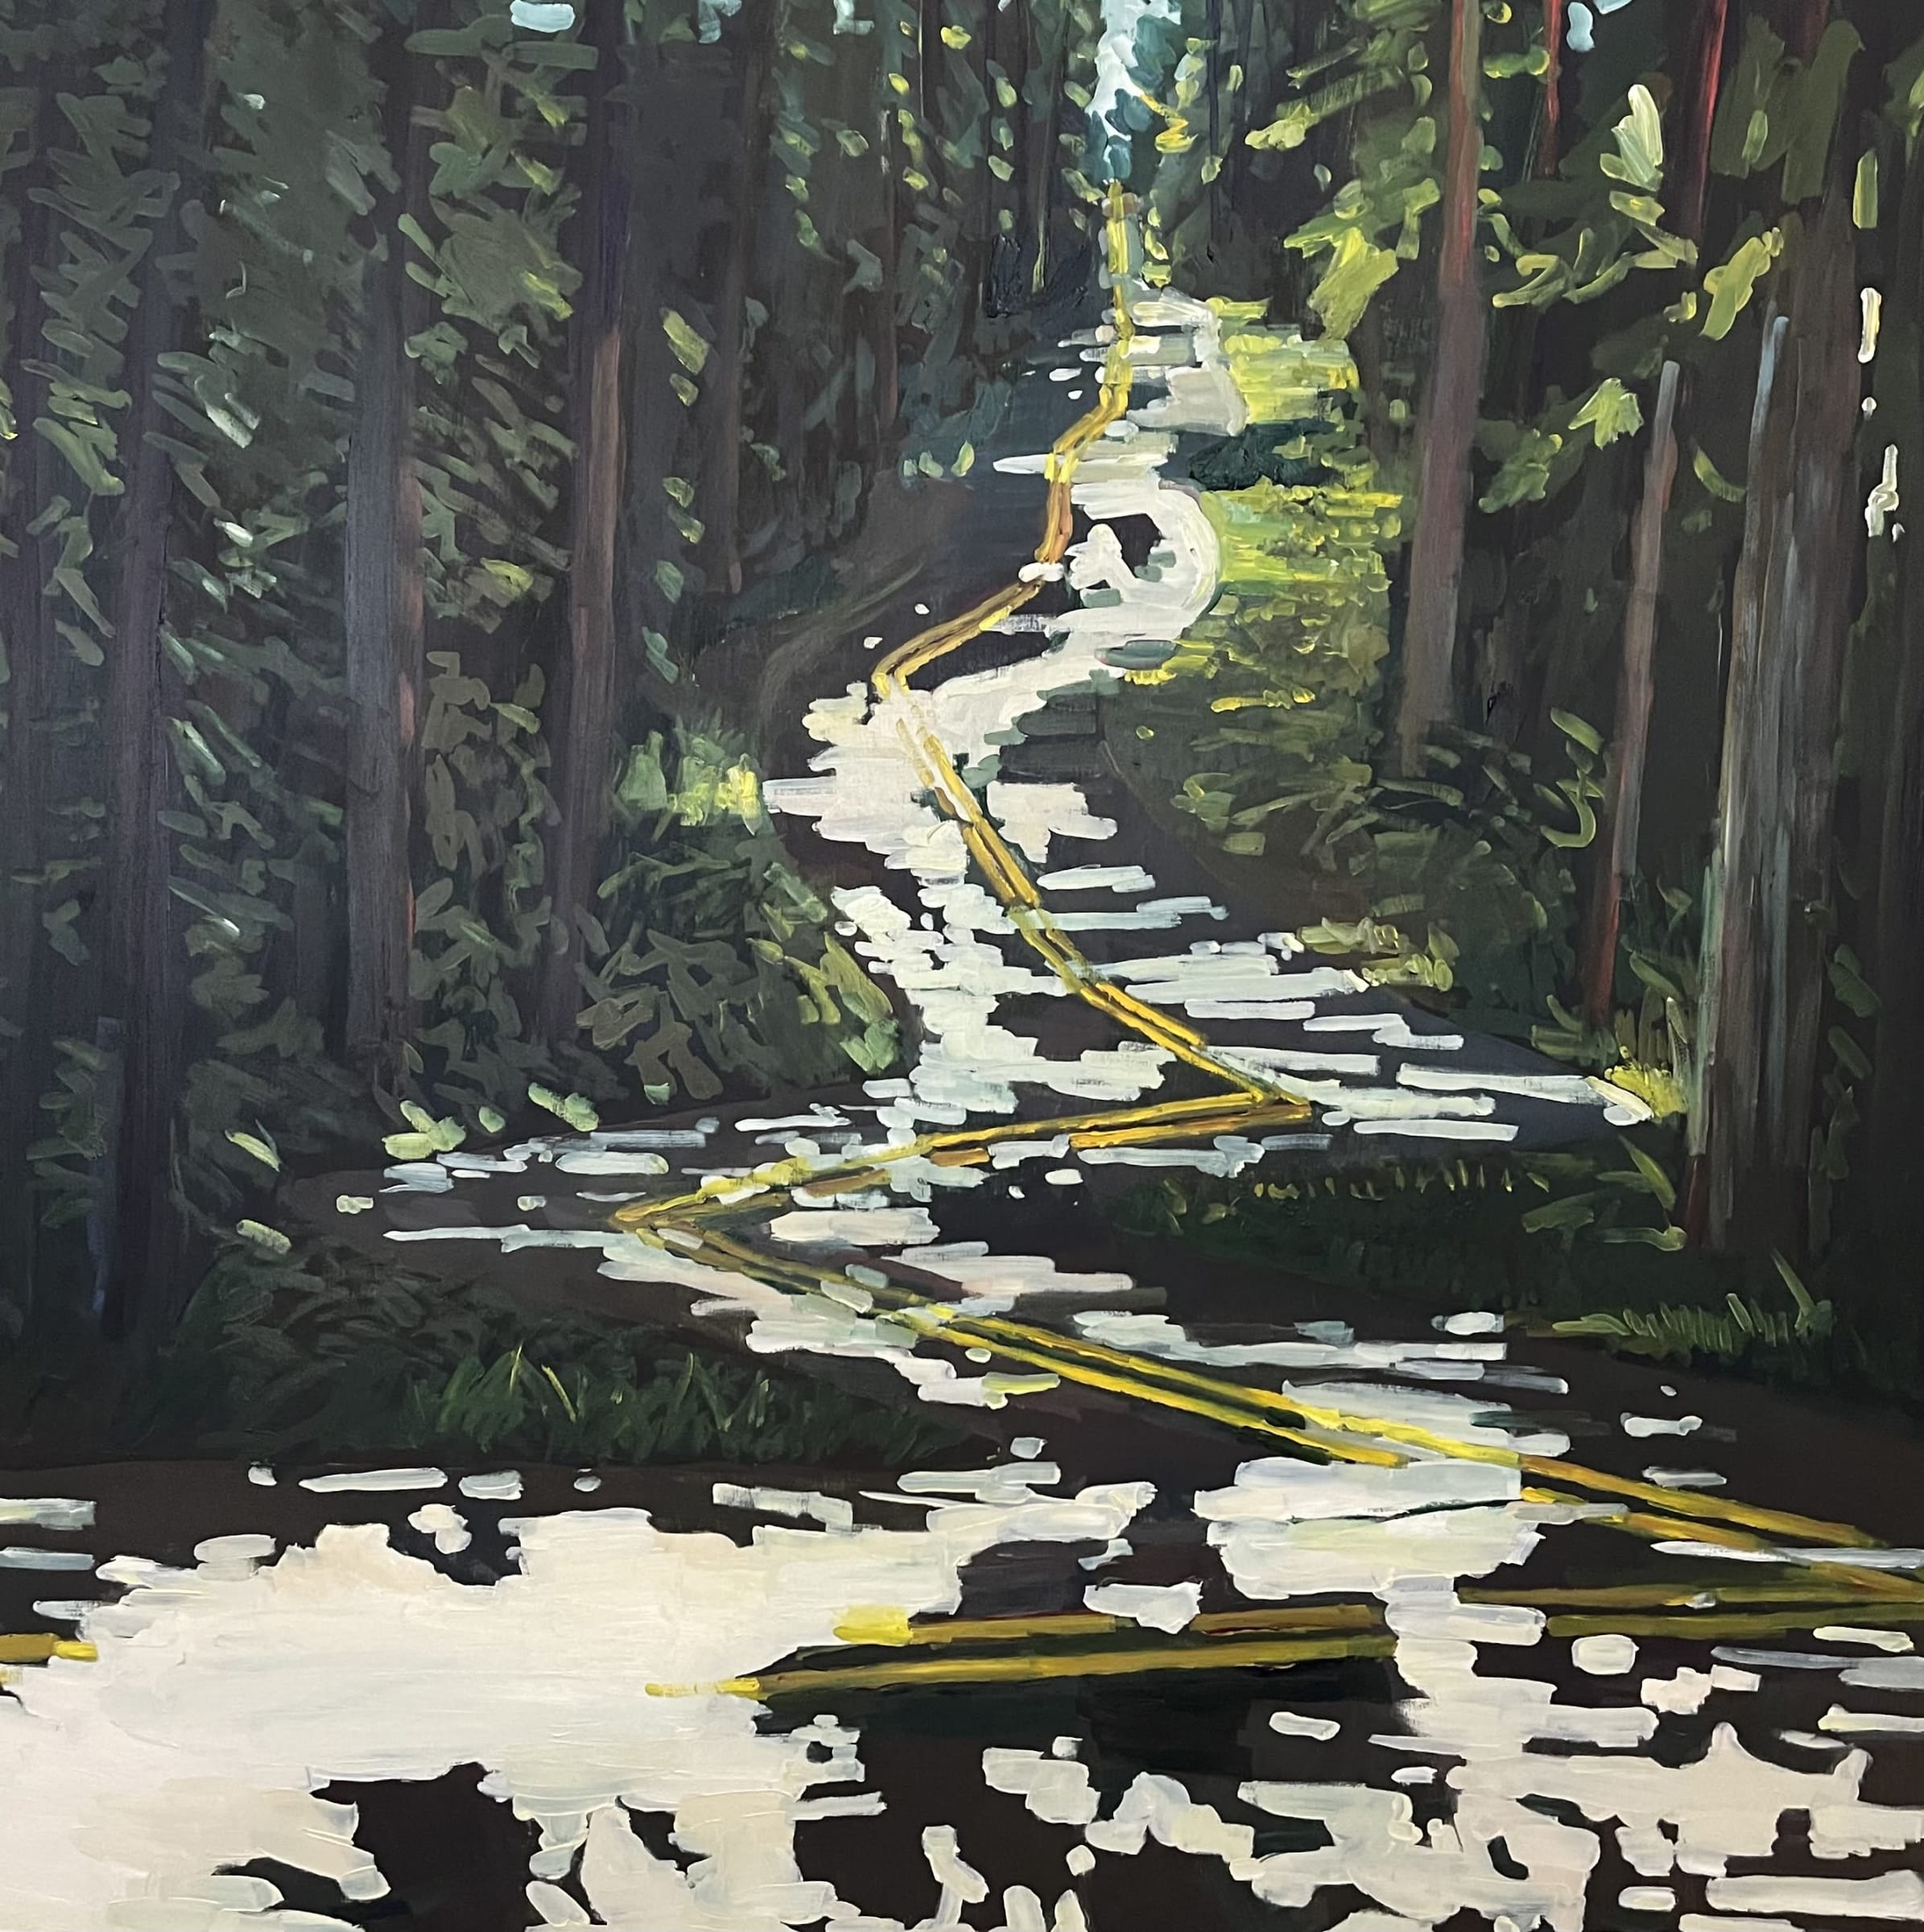 """<span class=""""link fancybox-details-link""""><a href=""""/artists/97-erika-lee-sears/works/1438-erika-lee-sears-winding-road/"""">View Detail Page</a></span><div class=""""artist""""><strong>Erika Lee Sears</strong></div> <div class=""""title""""><em>Winding Road</em></div> <div class=""""medium"""">Oil on panel</div> <div class=""""dimensions"""">24 x 24 inches</div>"""